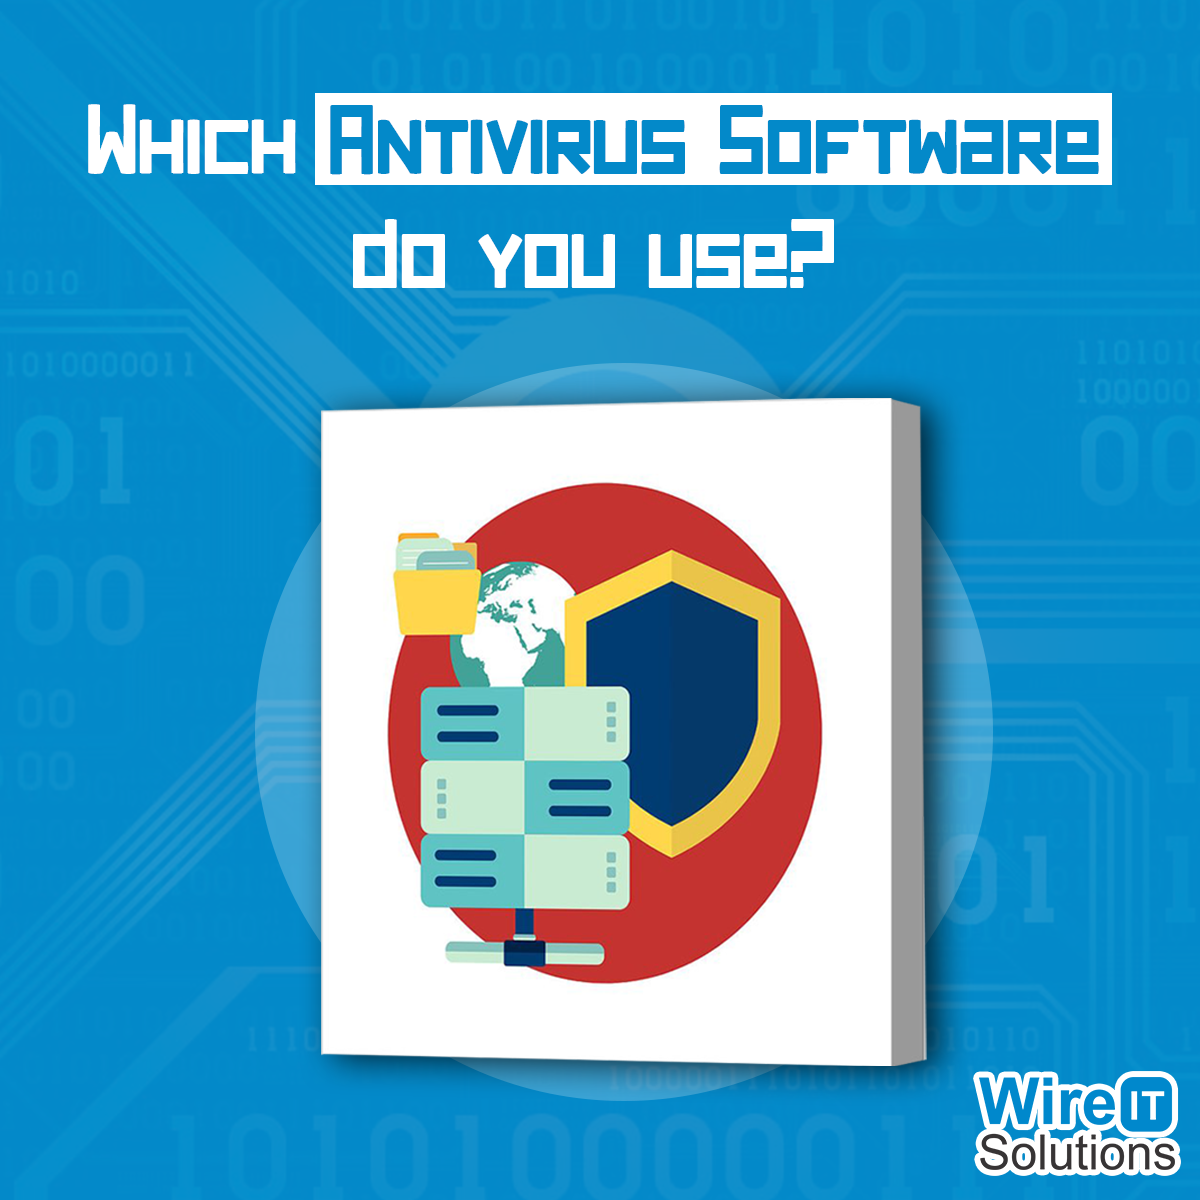 Which Antivirus Software do you use the most? Visit our website: bit